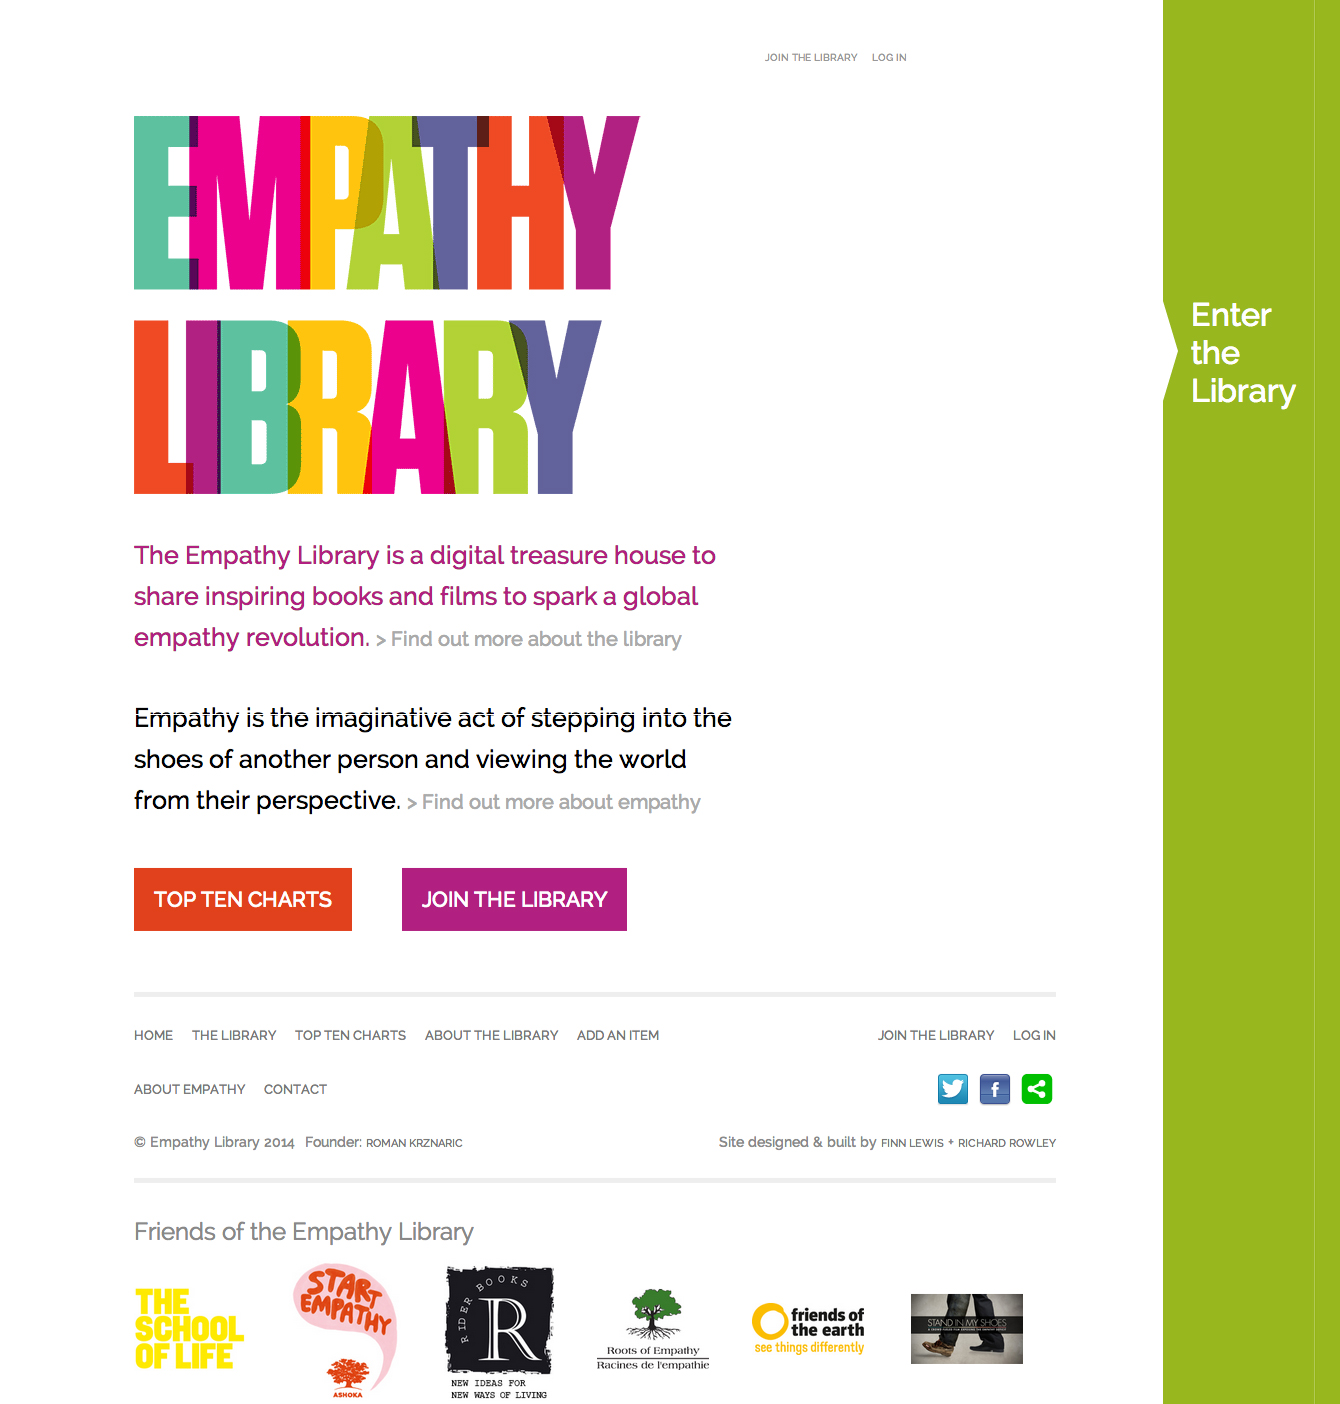 The Empathy Library